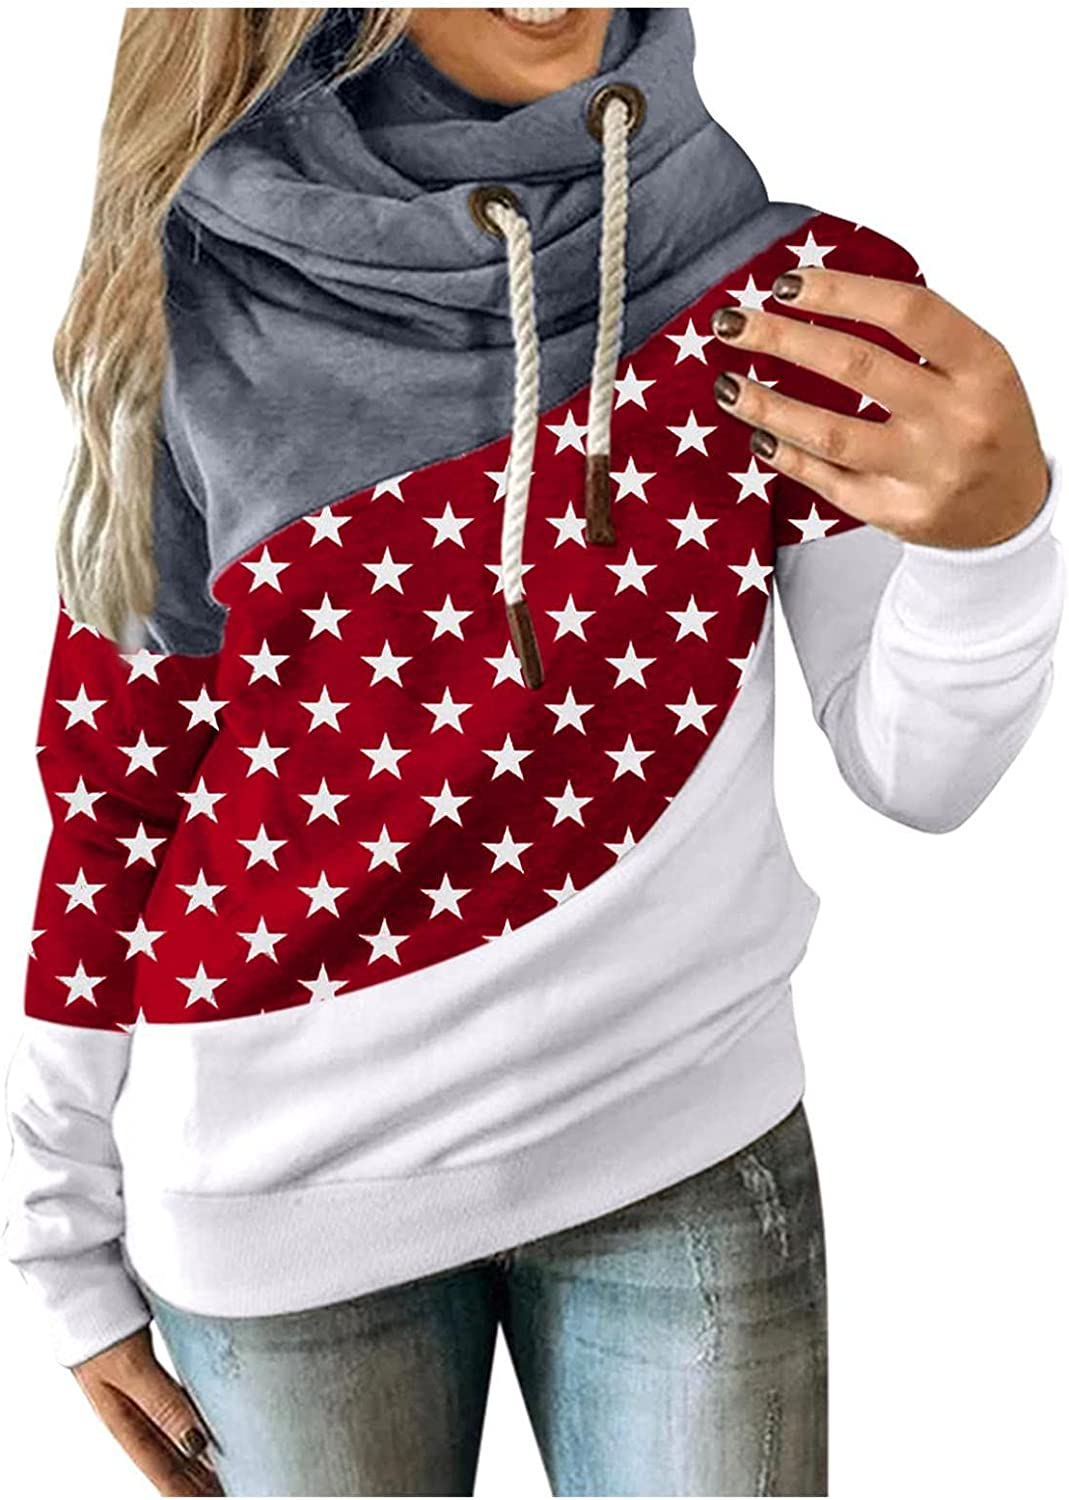 POLLYANNA KEONG Womens Hoodies Plus Size Color Block Long Sleeve Graphic Sweatshirts Casual Pullover Tops Blouse